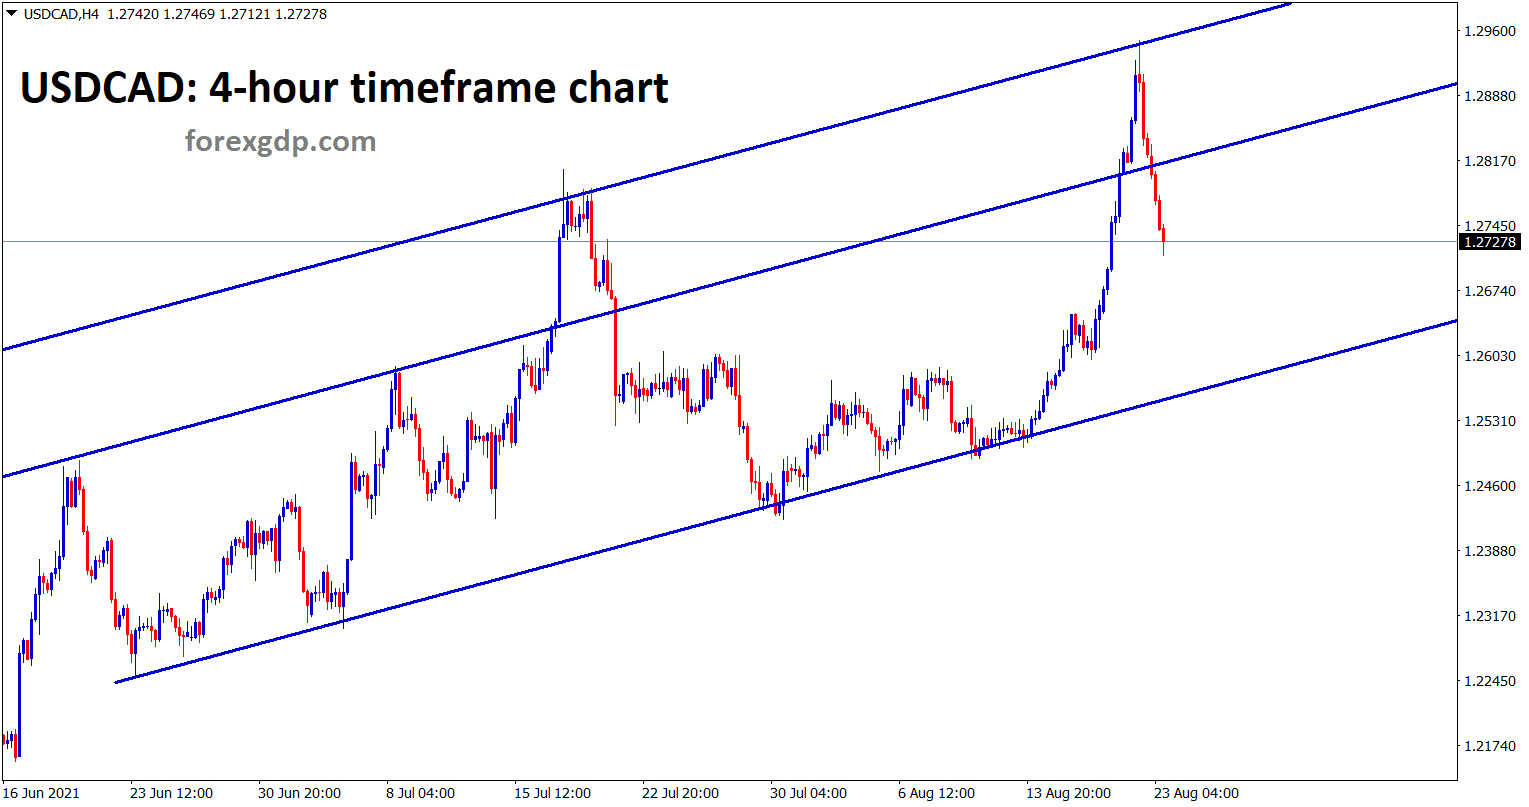 USDCAD is moving in an uptrend line in the 4 hour timeframe chart